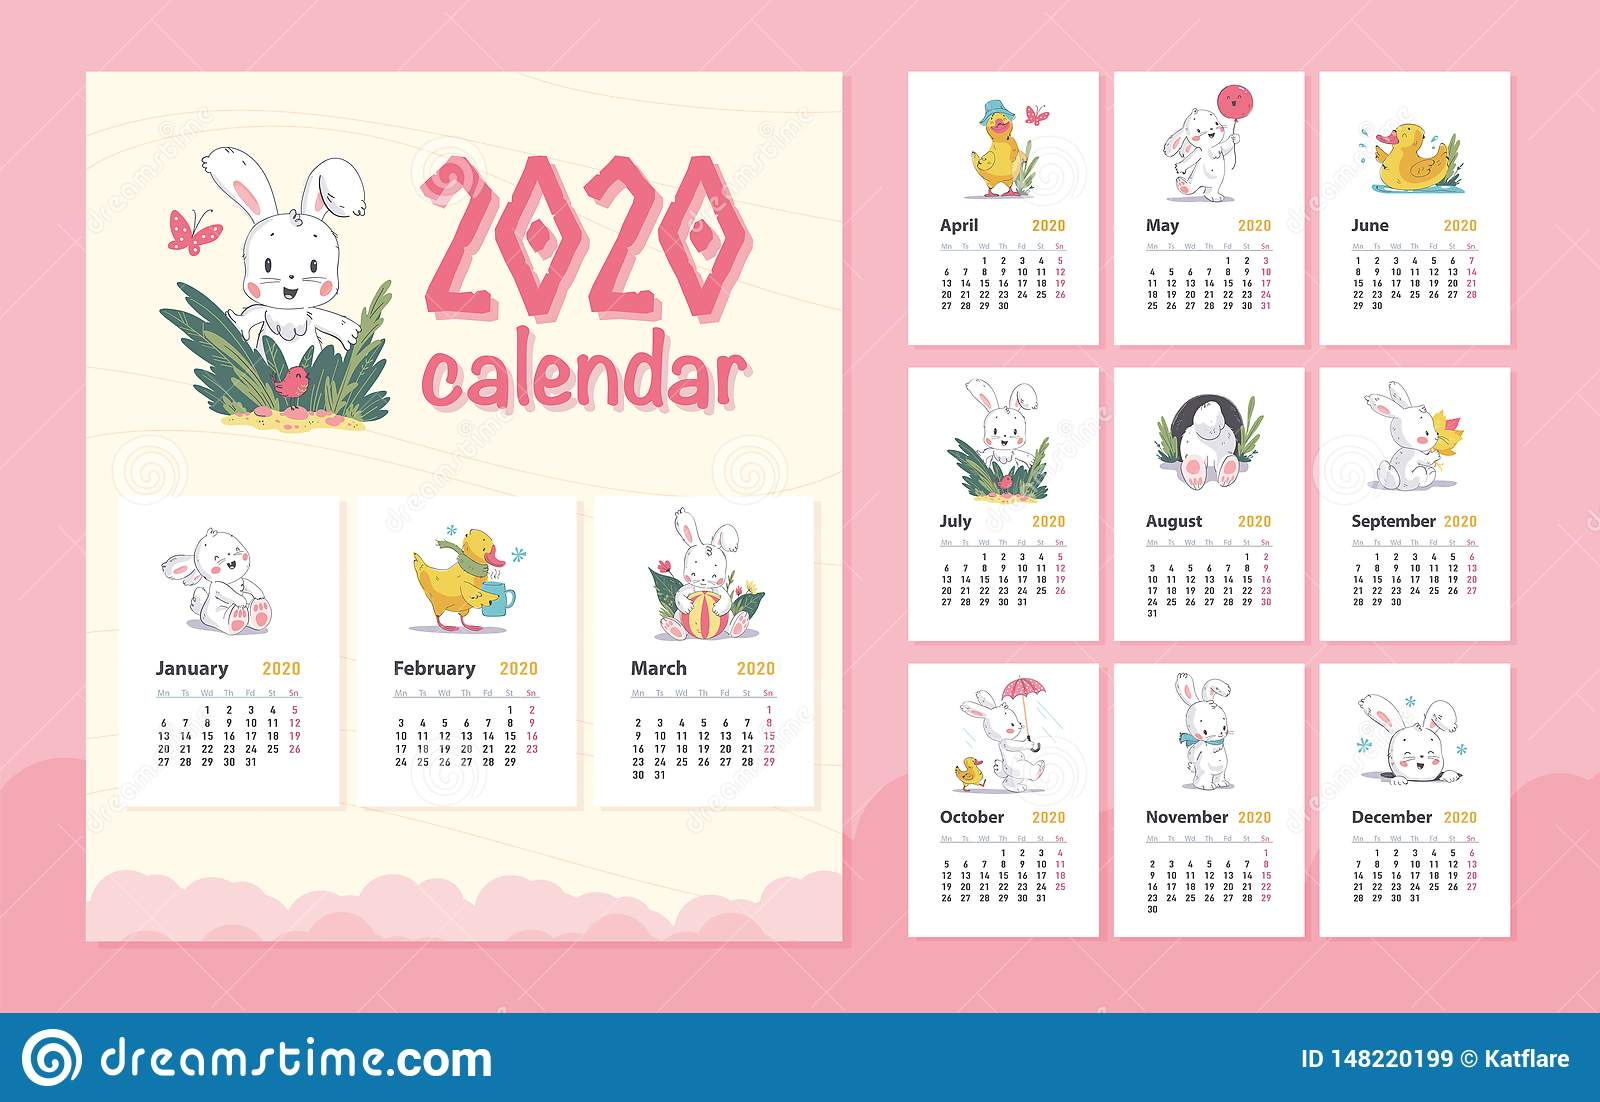 Vector 2020 baby calendar design template with cute white bunny animal character & little yellow duck walk, stand, sit.